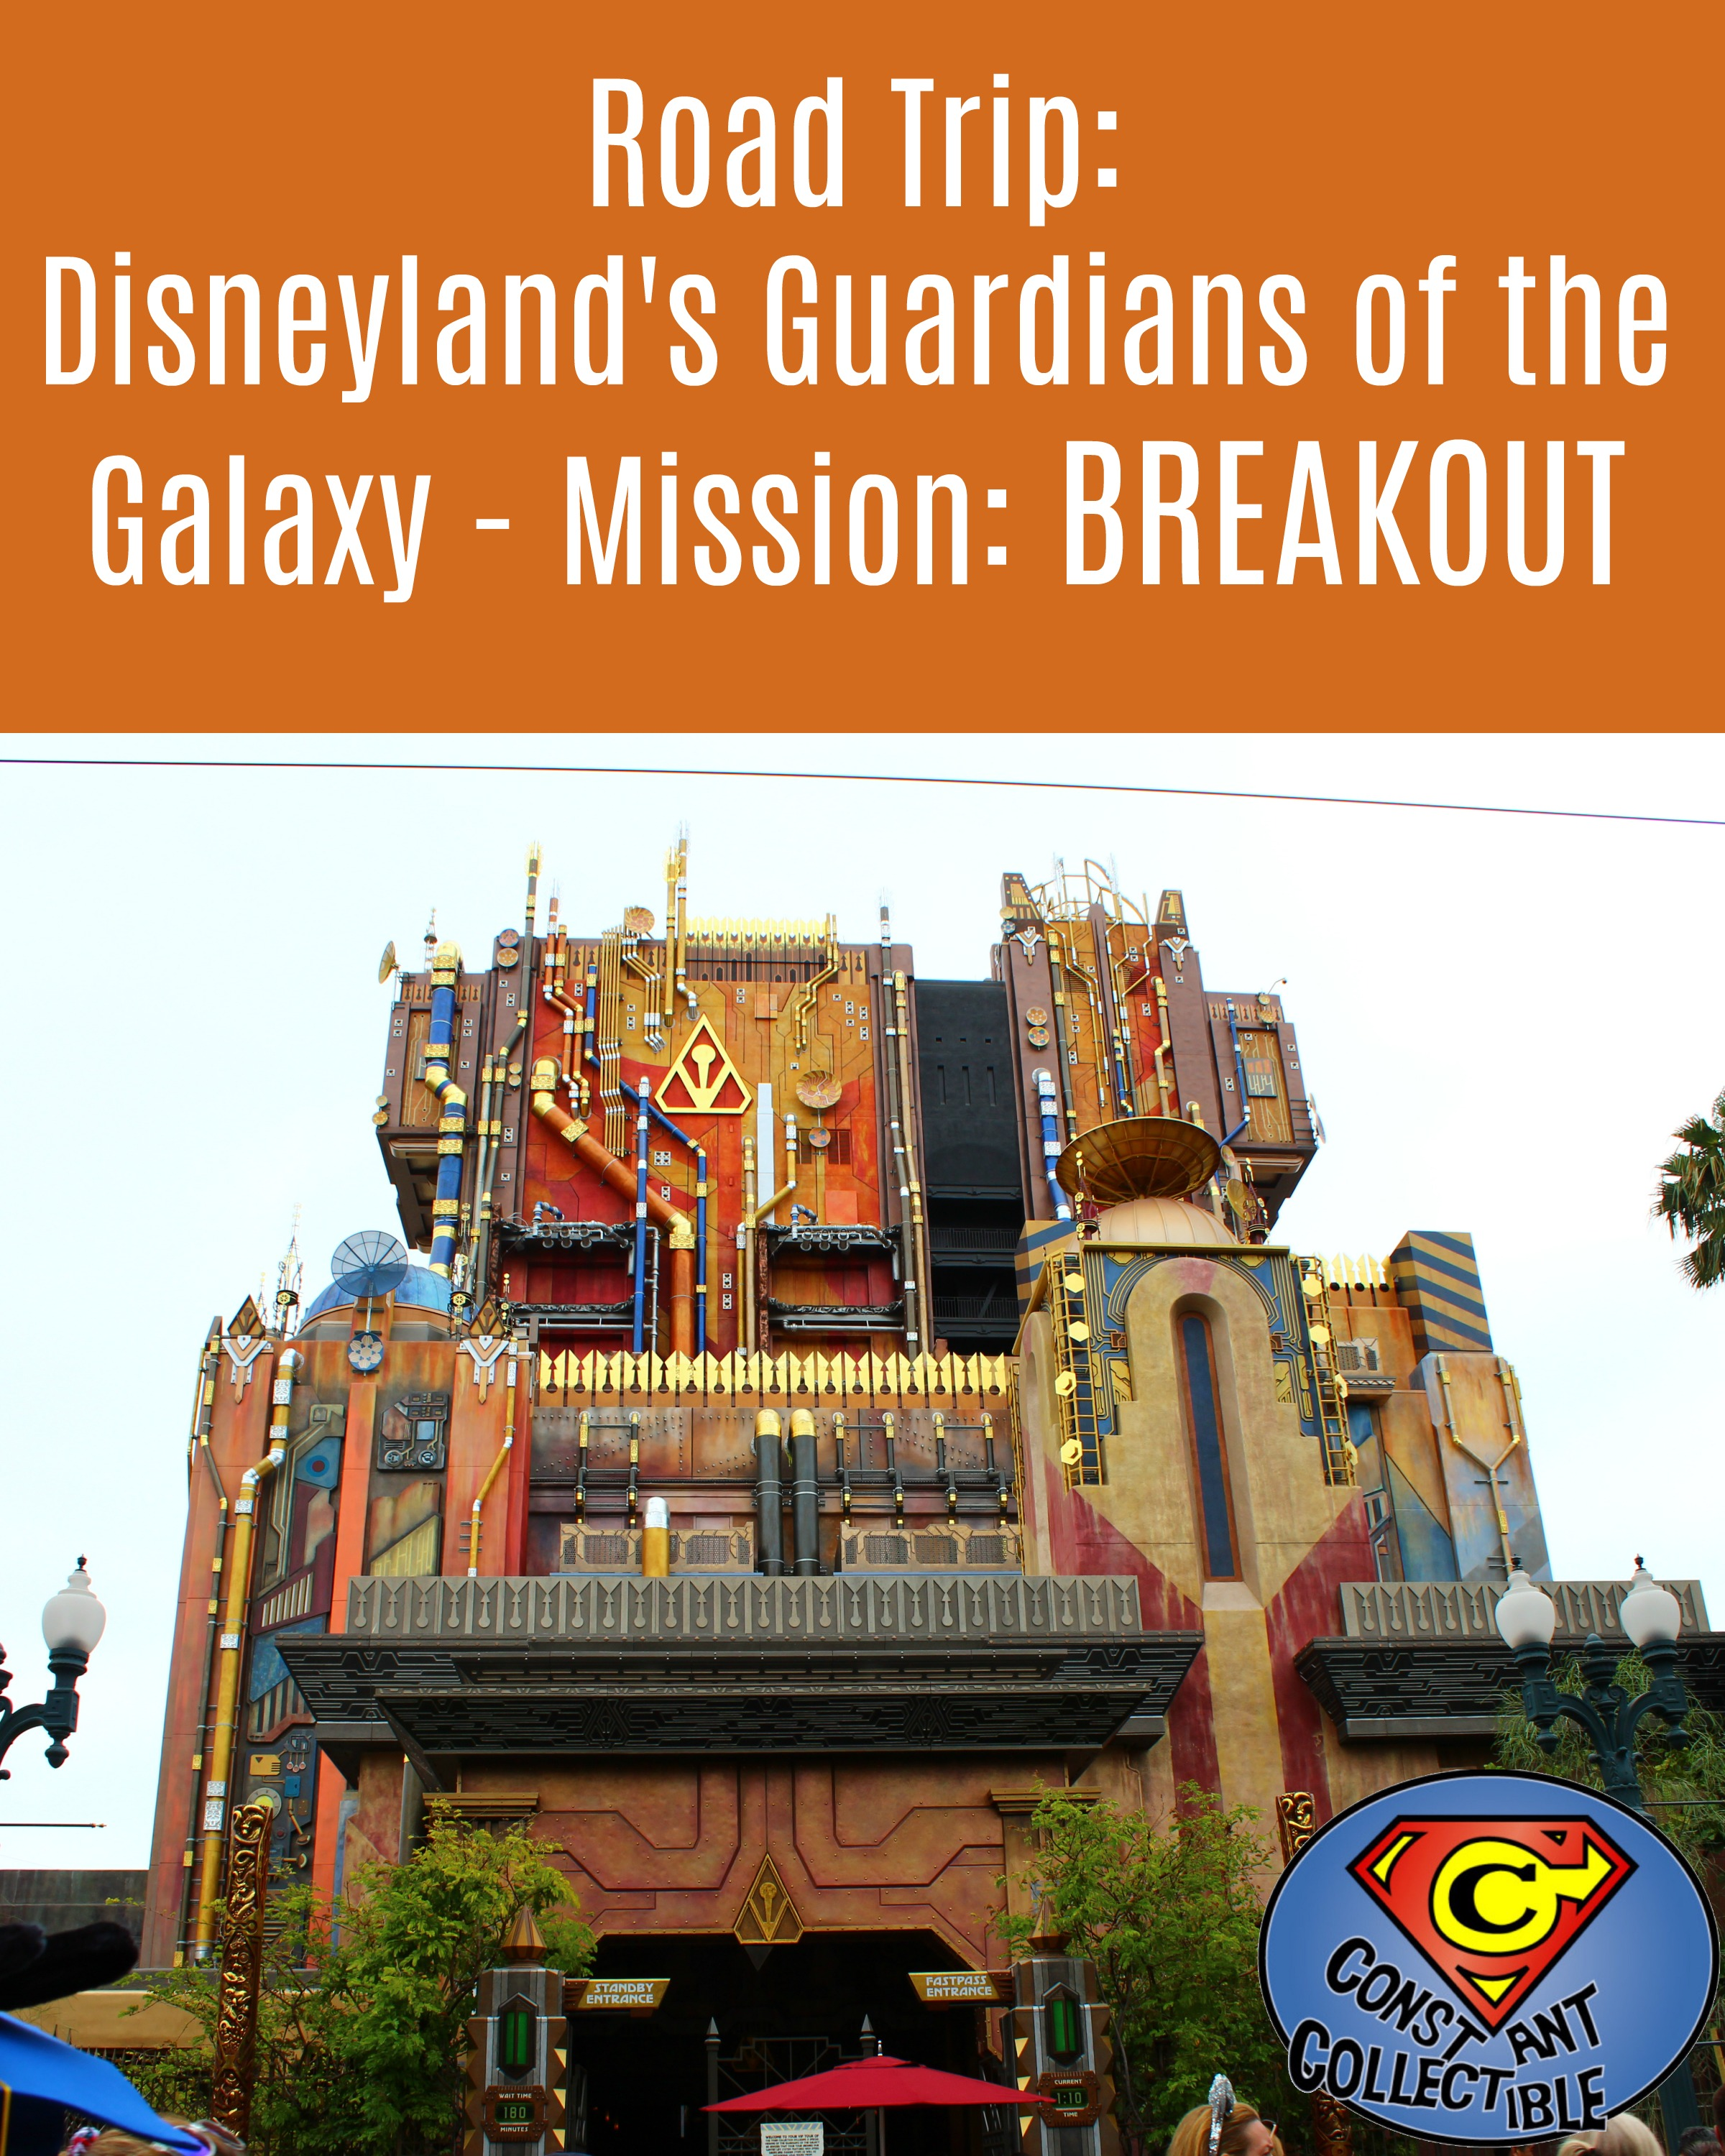 Road Trip_ Disneyland's Guardians of the Galaxy - Mission_ BREAKOUT